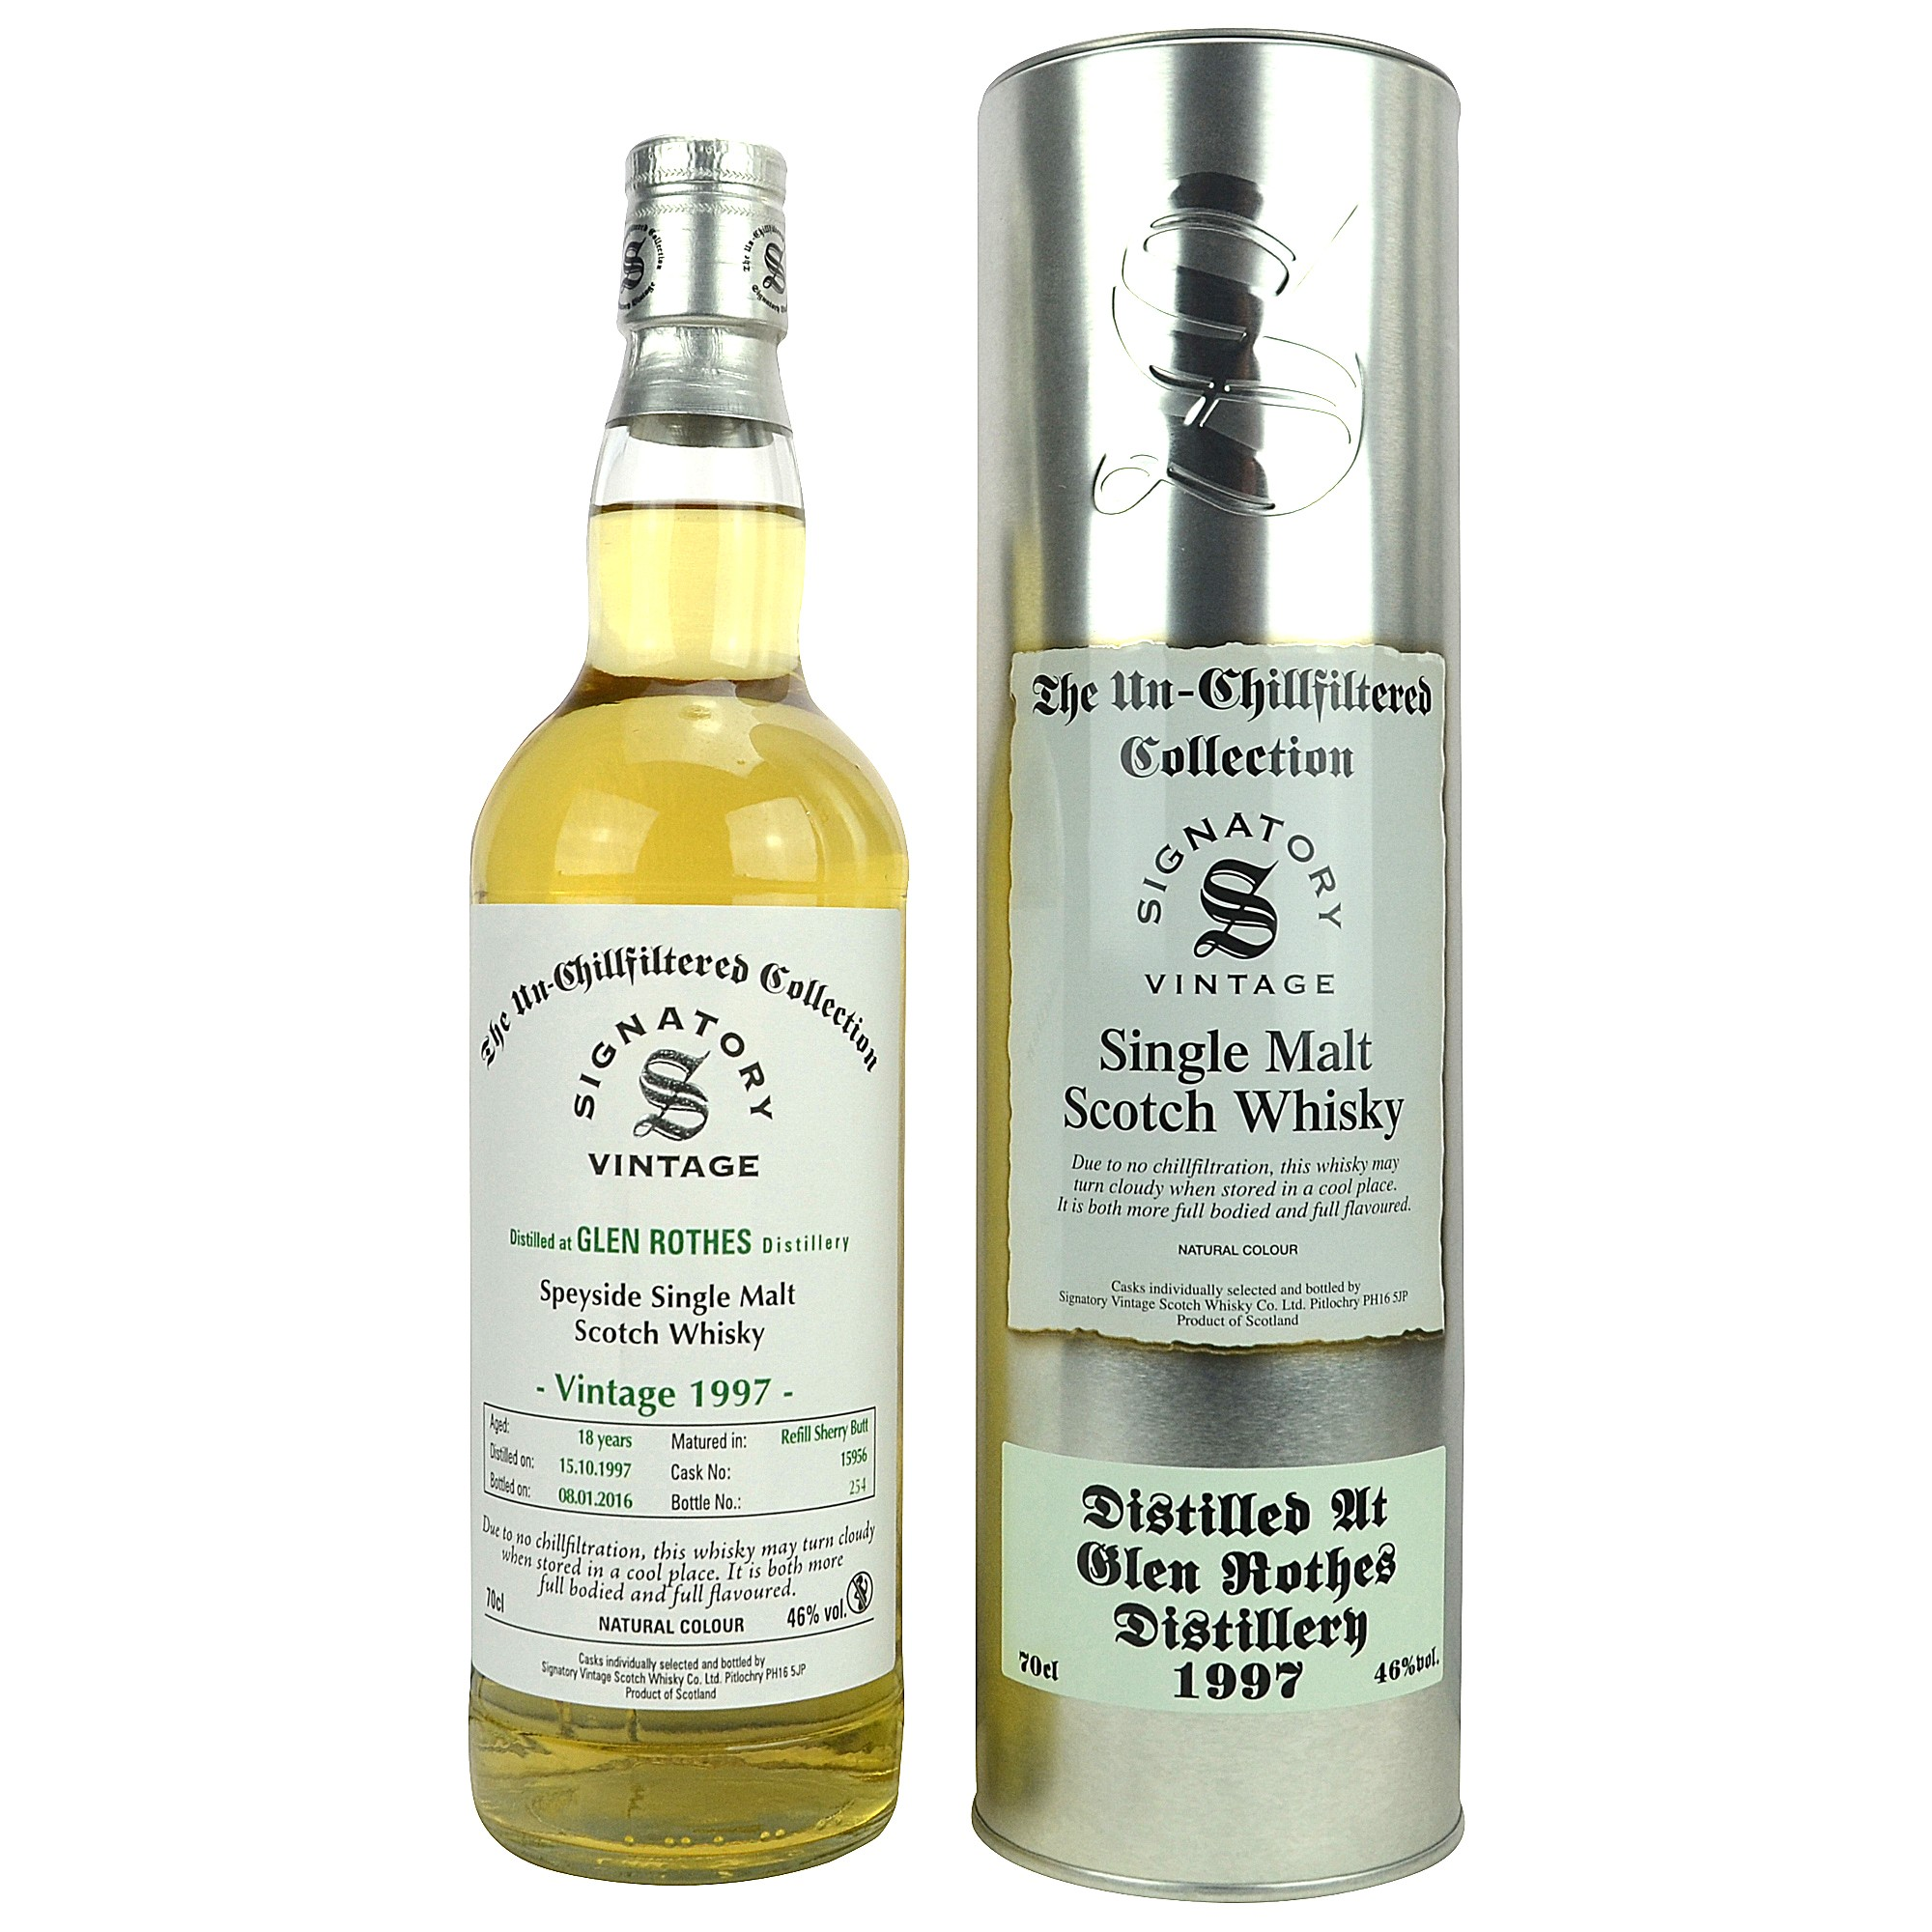 Glenrothes 1997/2016 - Cask No. 15963 (Refill Sherry Butt) - (Signatory Un-Chillfiltered)